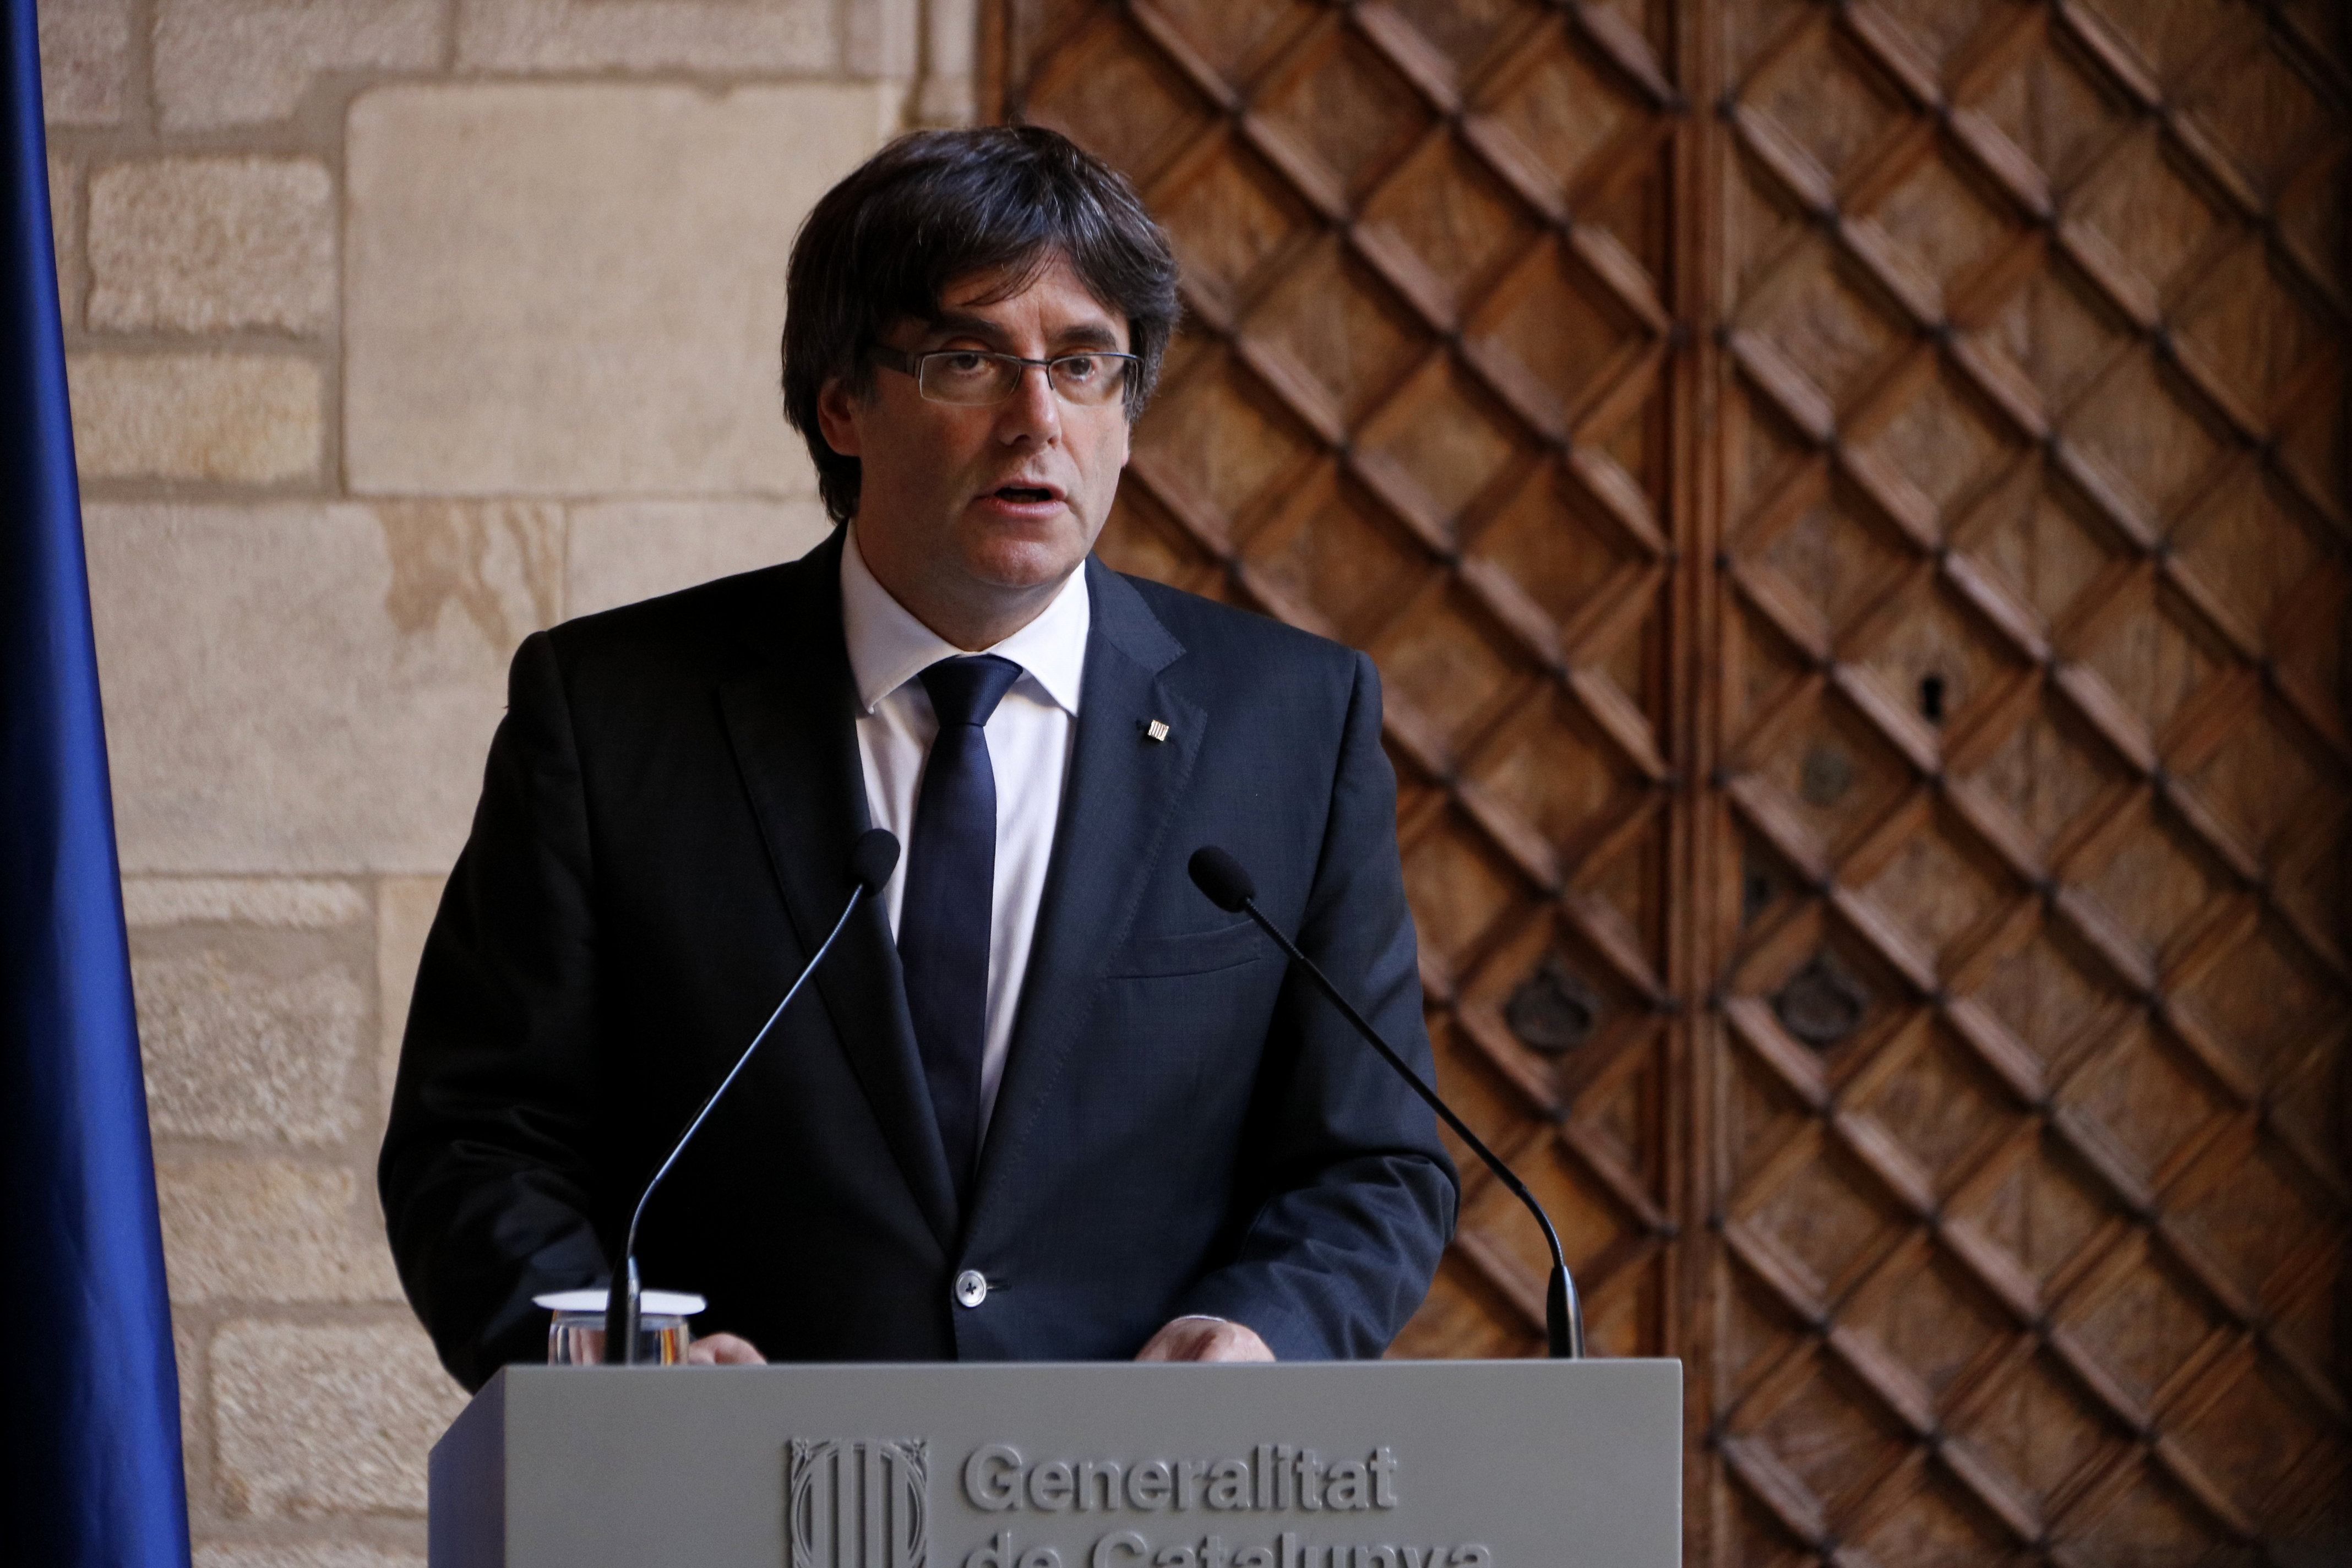 Puigdemont: Spain was ready to respond with 'casualties' if independence was carried through